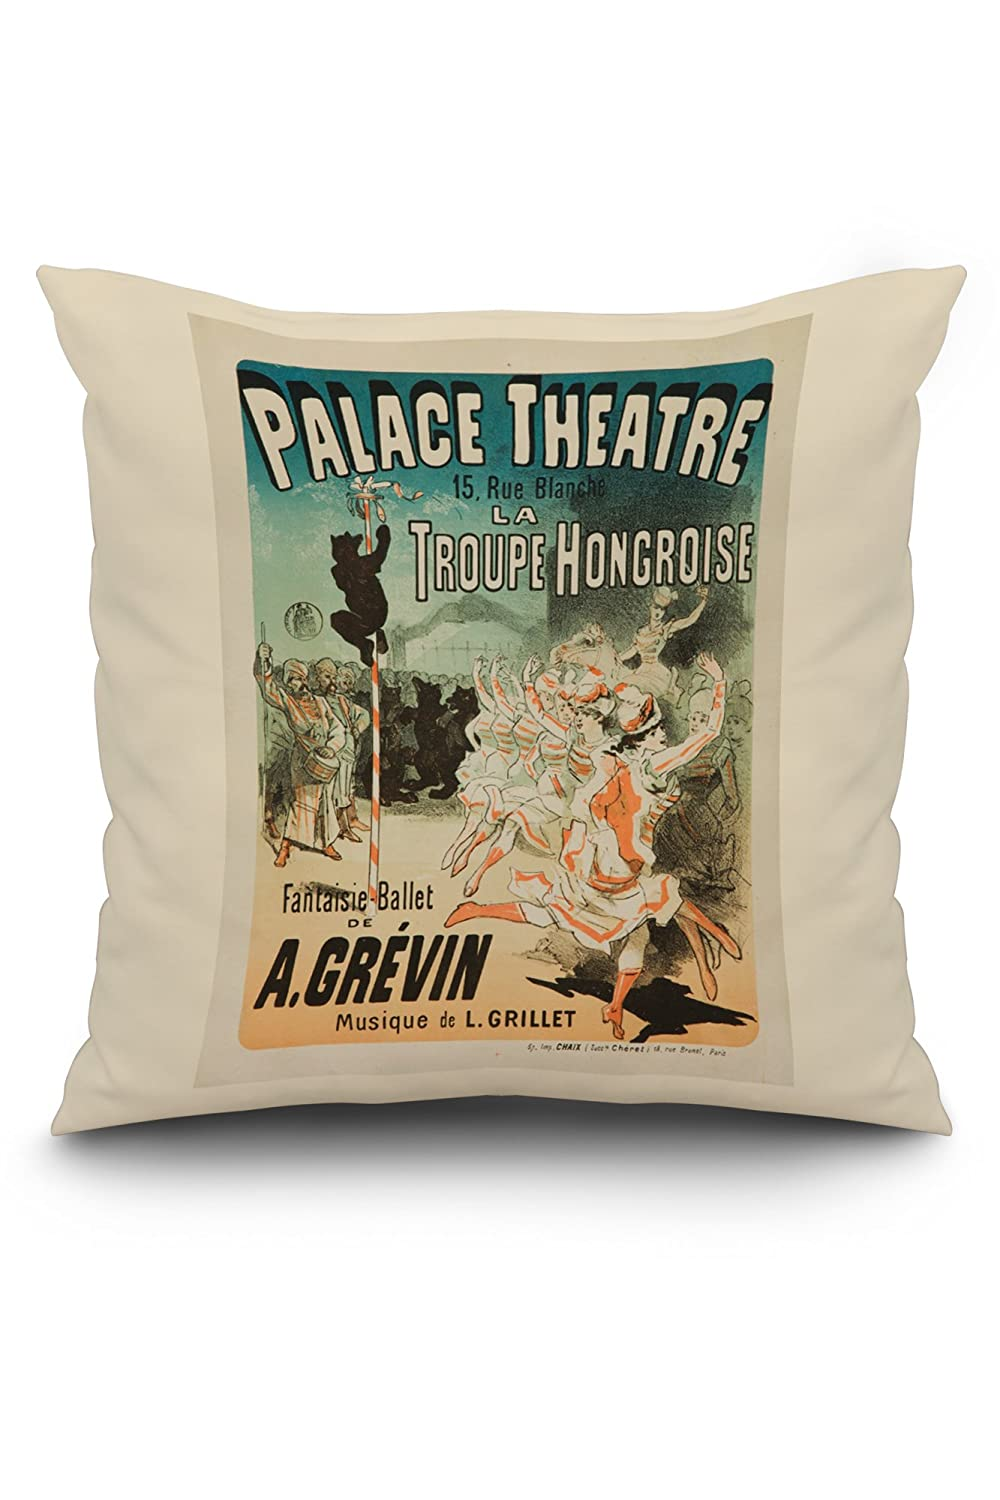 Amazon.com: Palace Theatre - A Grevin Vintage Poster (artist ...